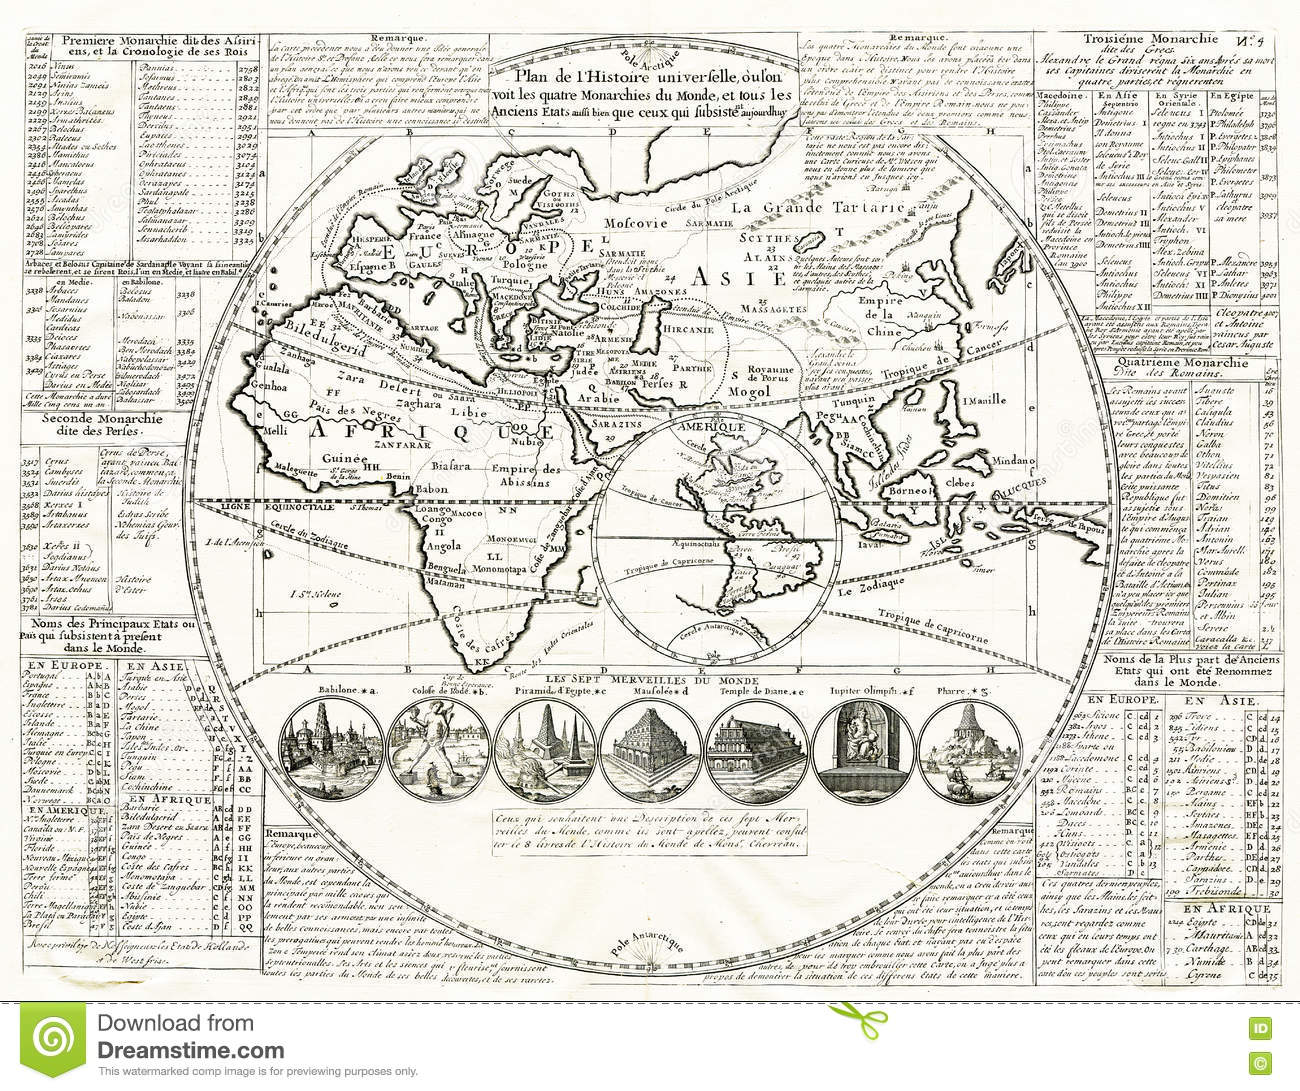 World map seven wonders of the ancient world 1707 stock image world map seven wonders of the ancient world 1707 gumiabroncs Images